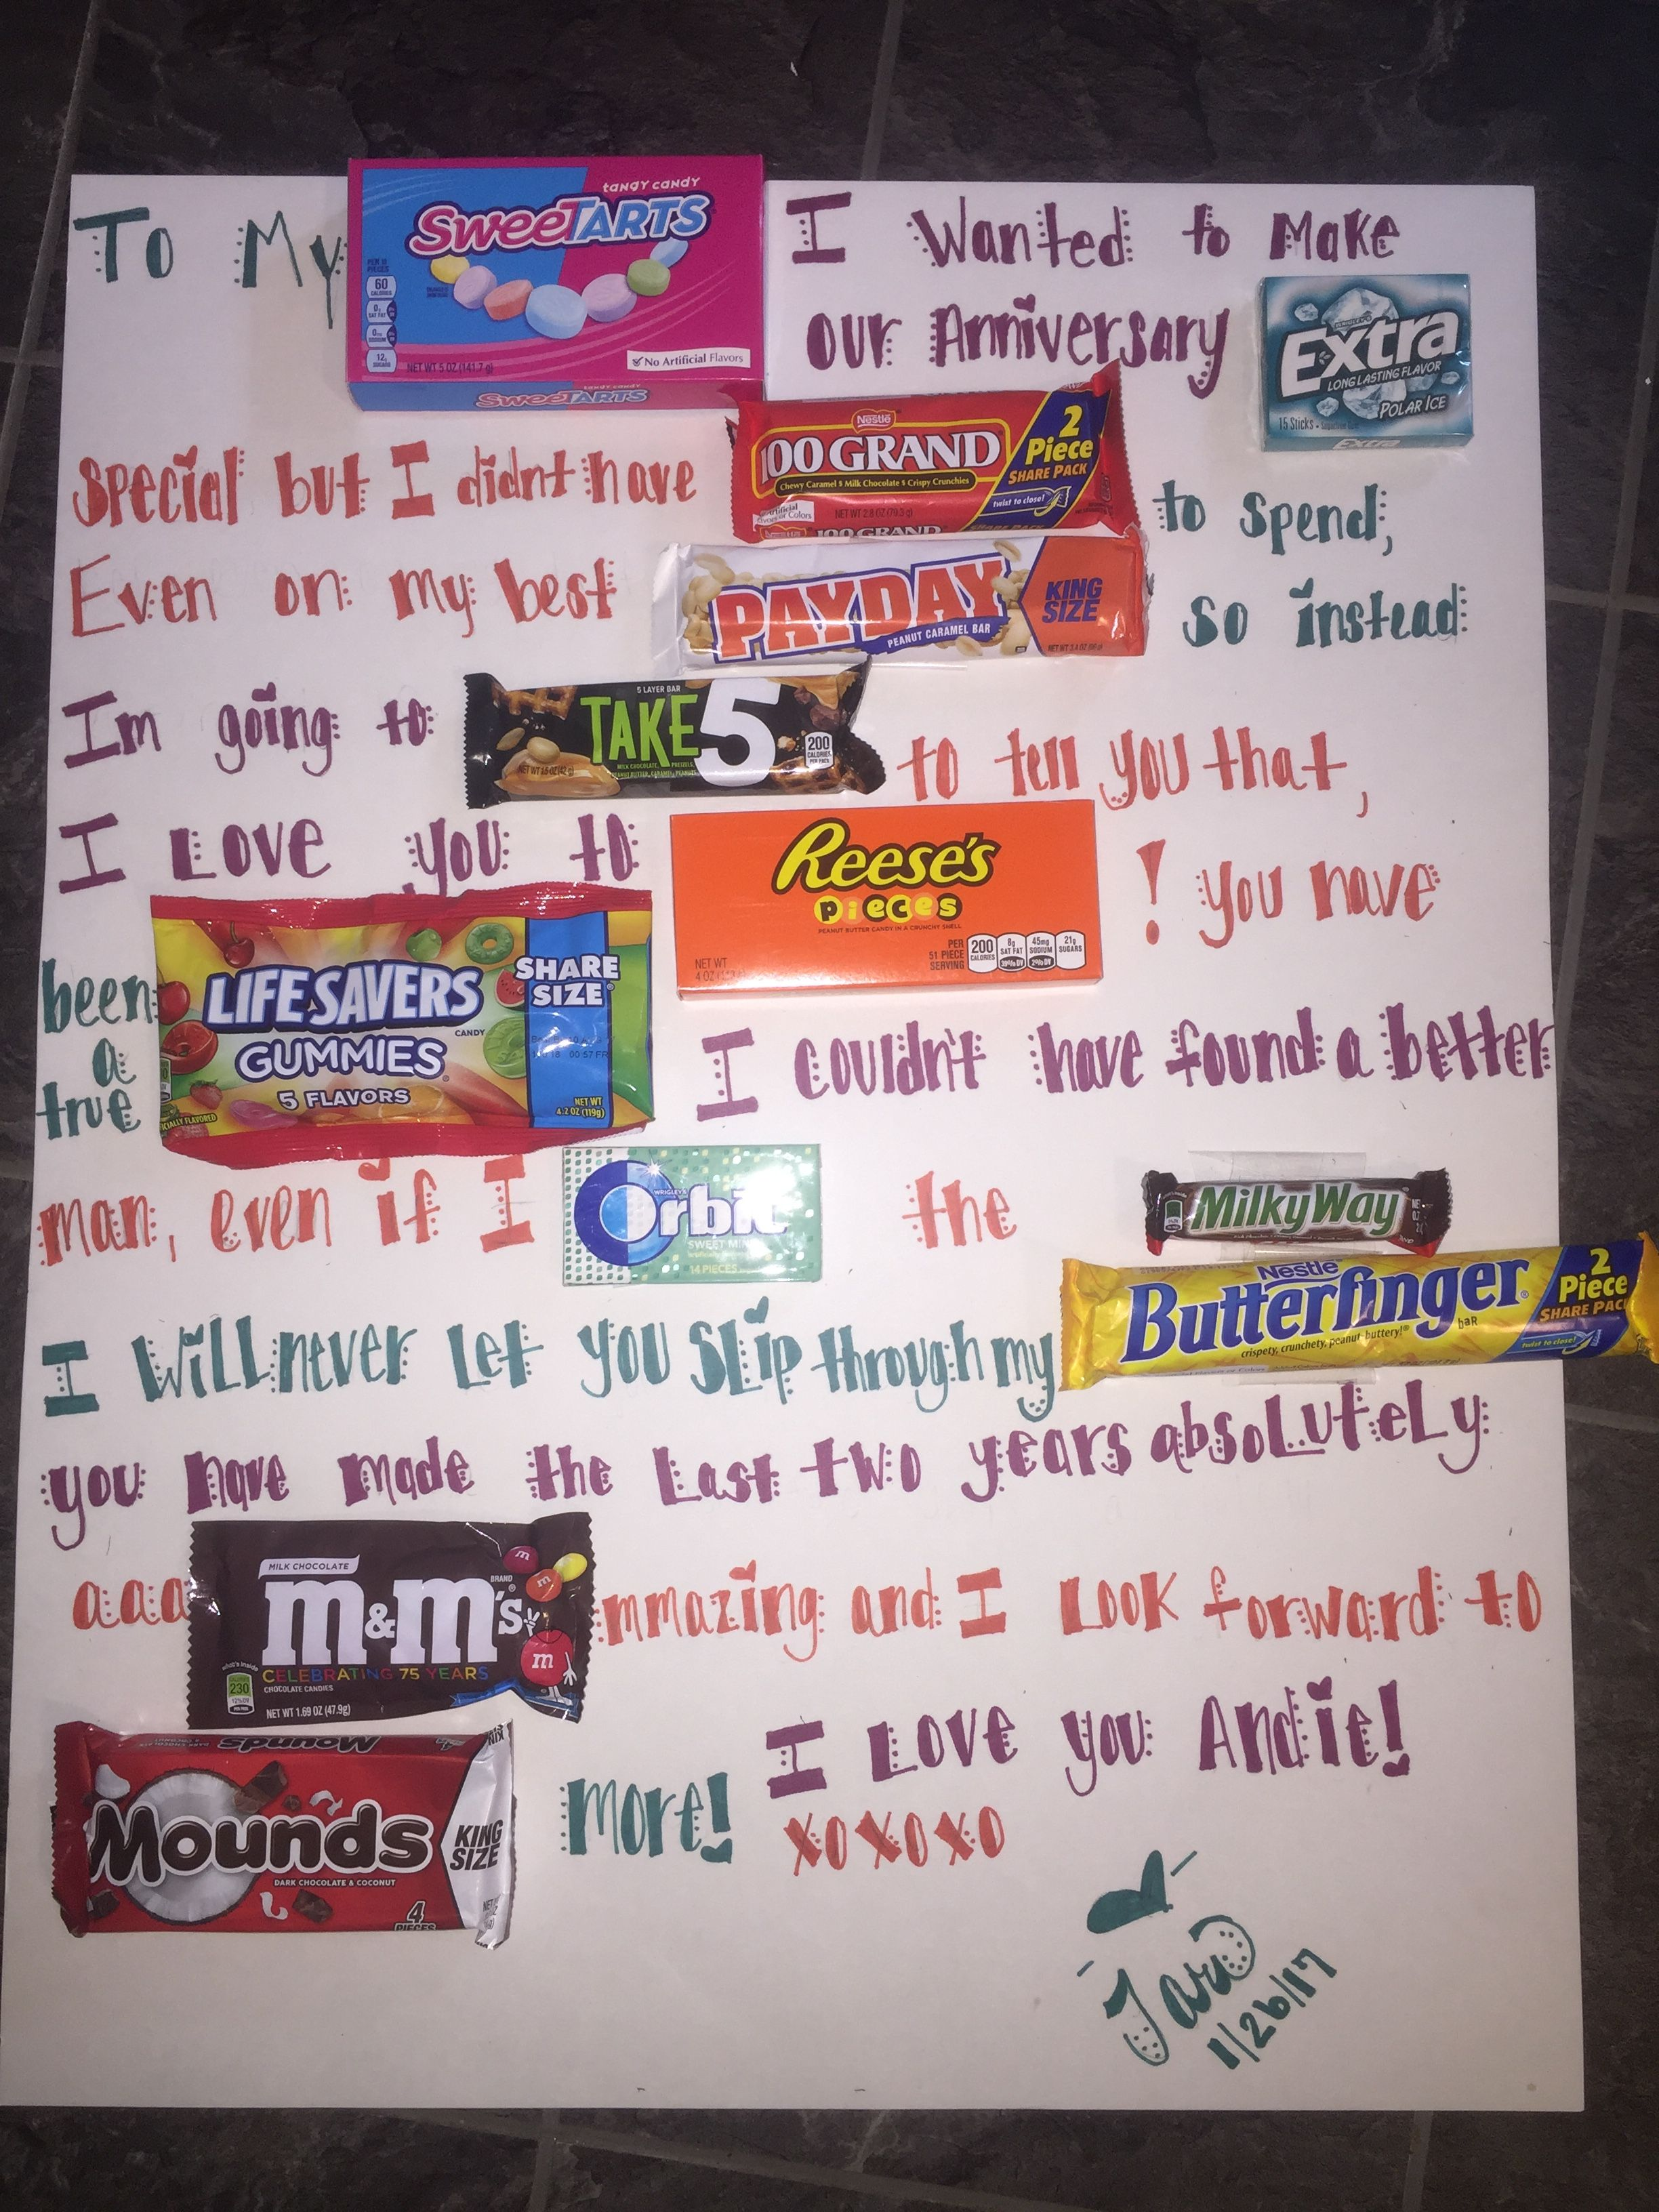 Cute valentines anniversary ideas with candy bars and poster board cute valentines anniversary ideas with candy bars and poster board negle Image collections